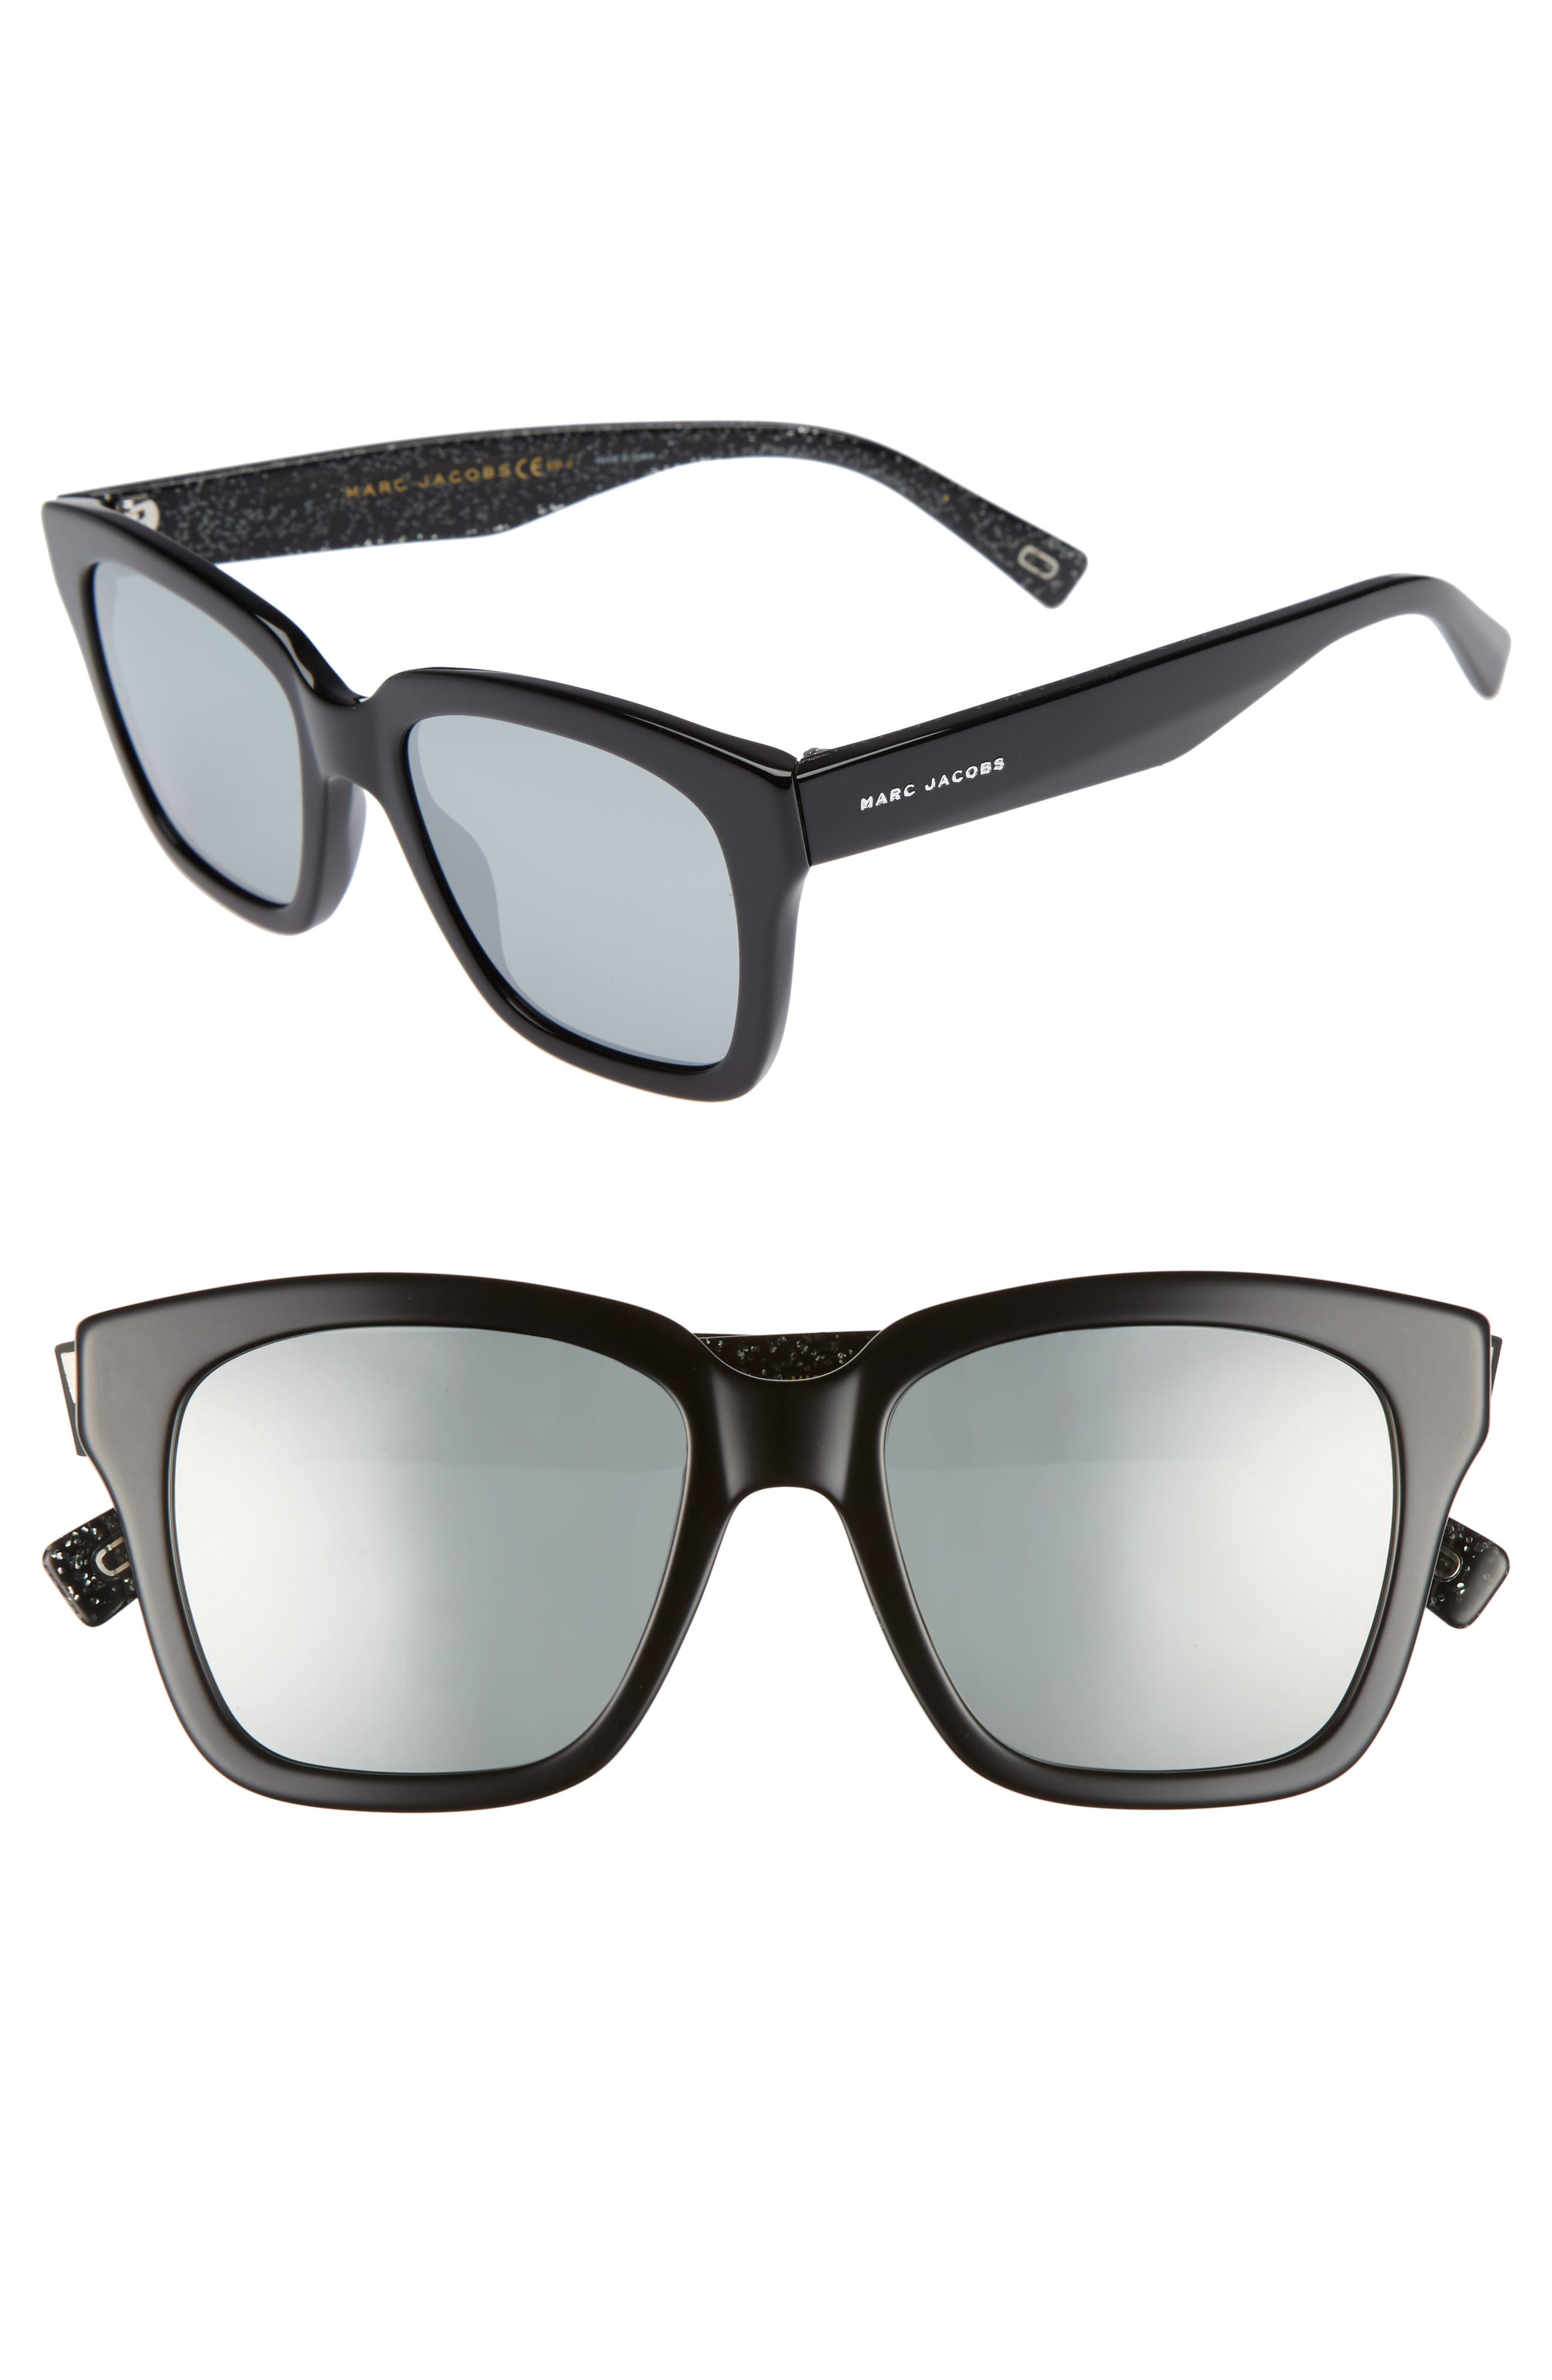 Main Image - MARC JACOBS 52mm Square Sunglasses